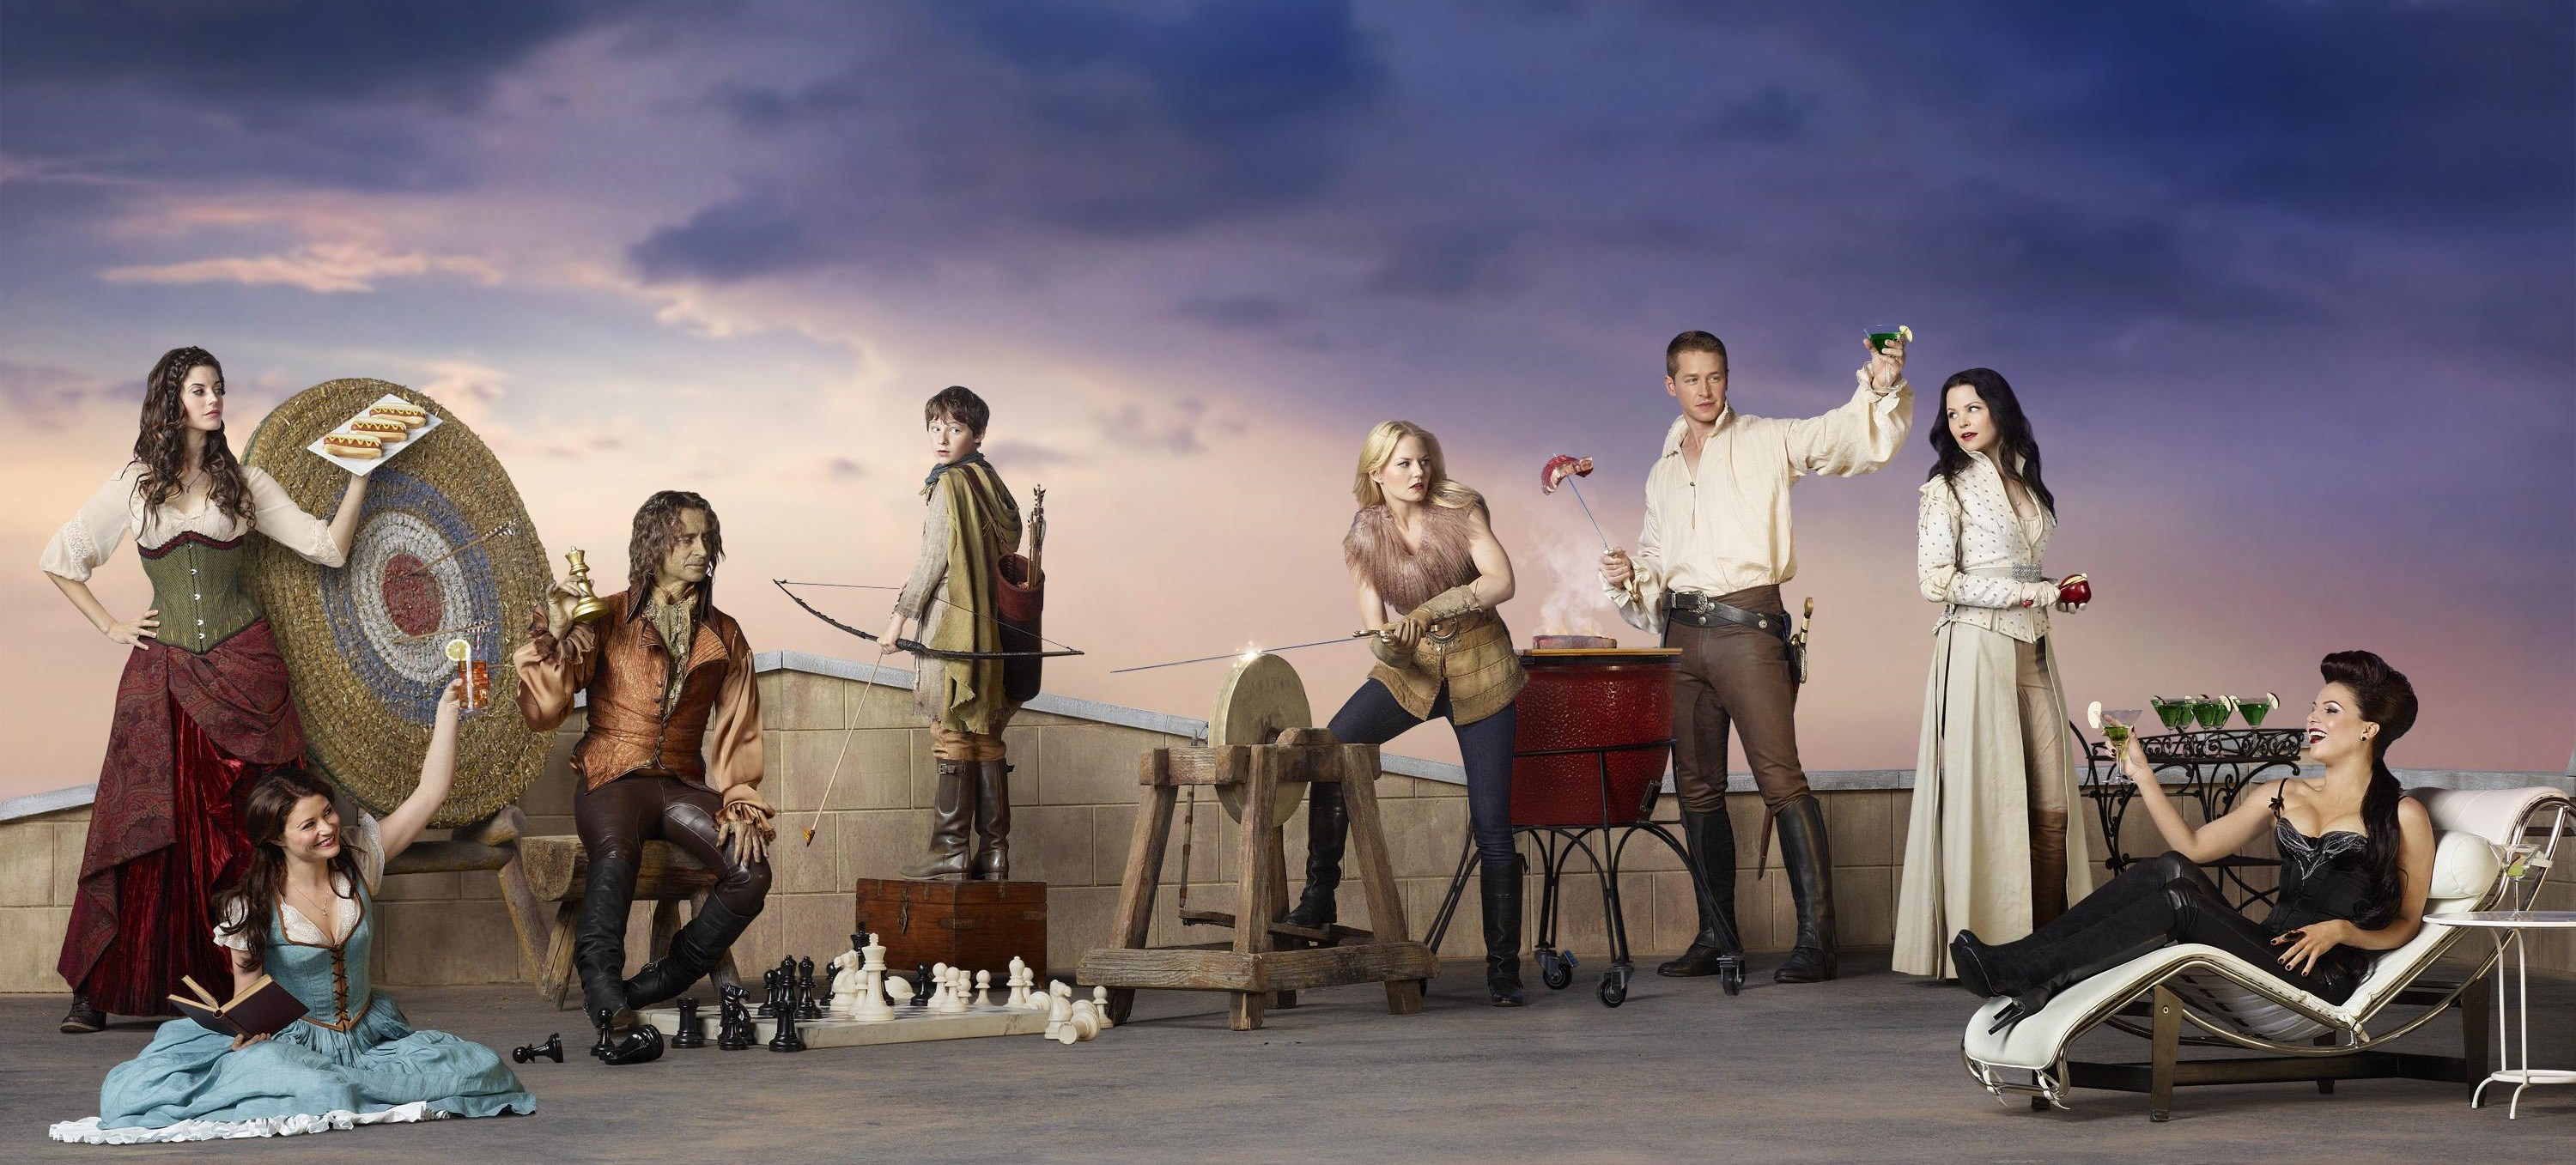 once upon a time season 2